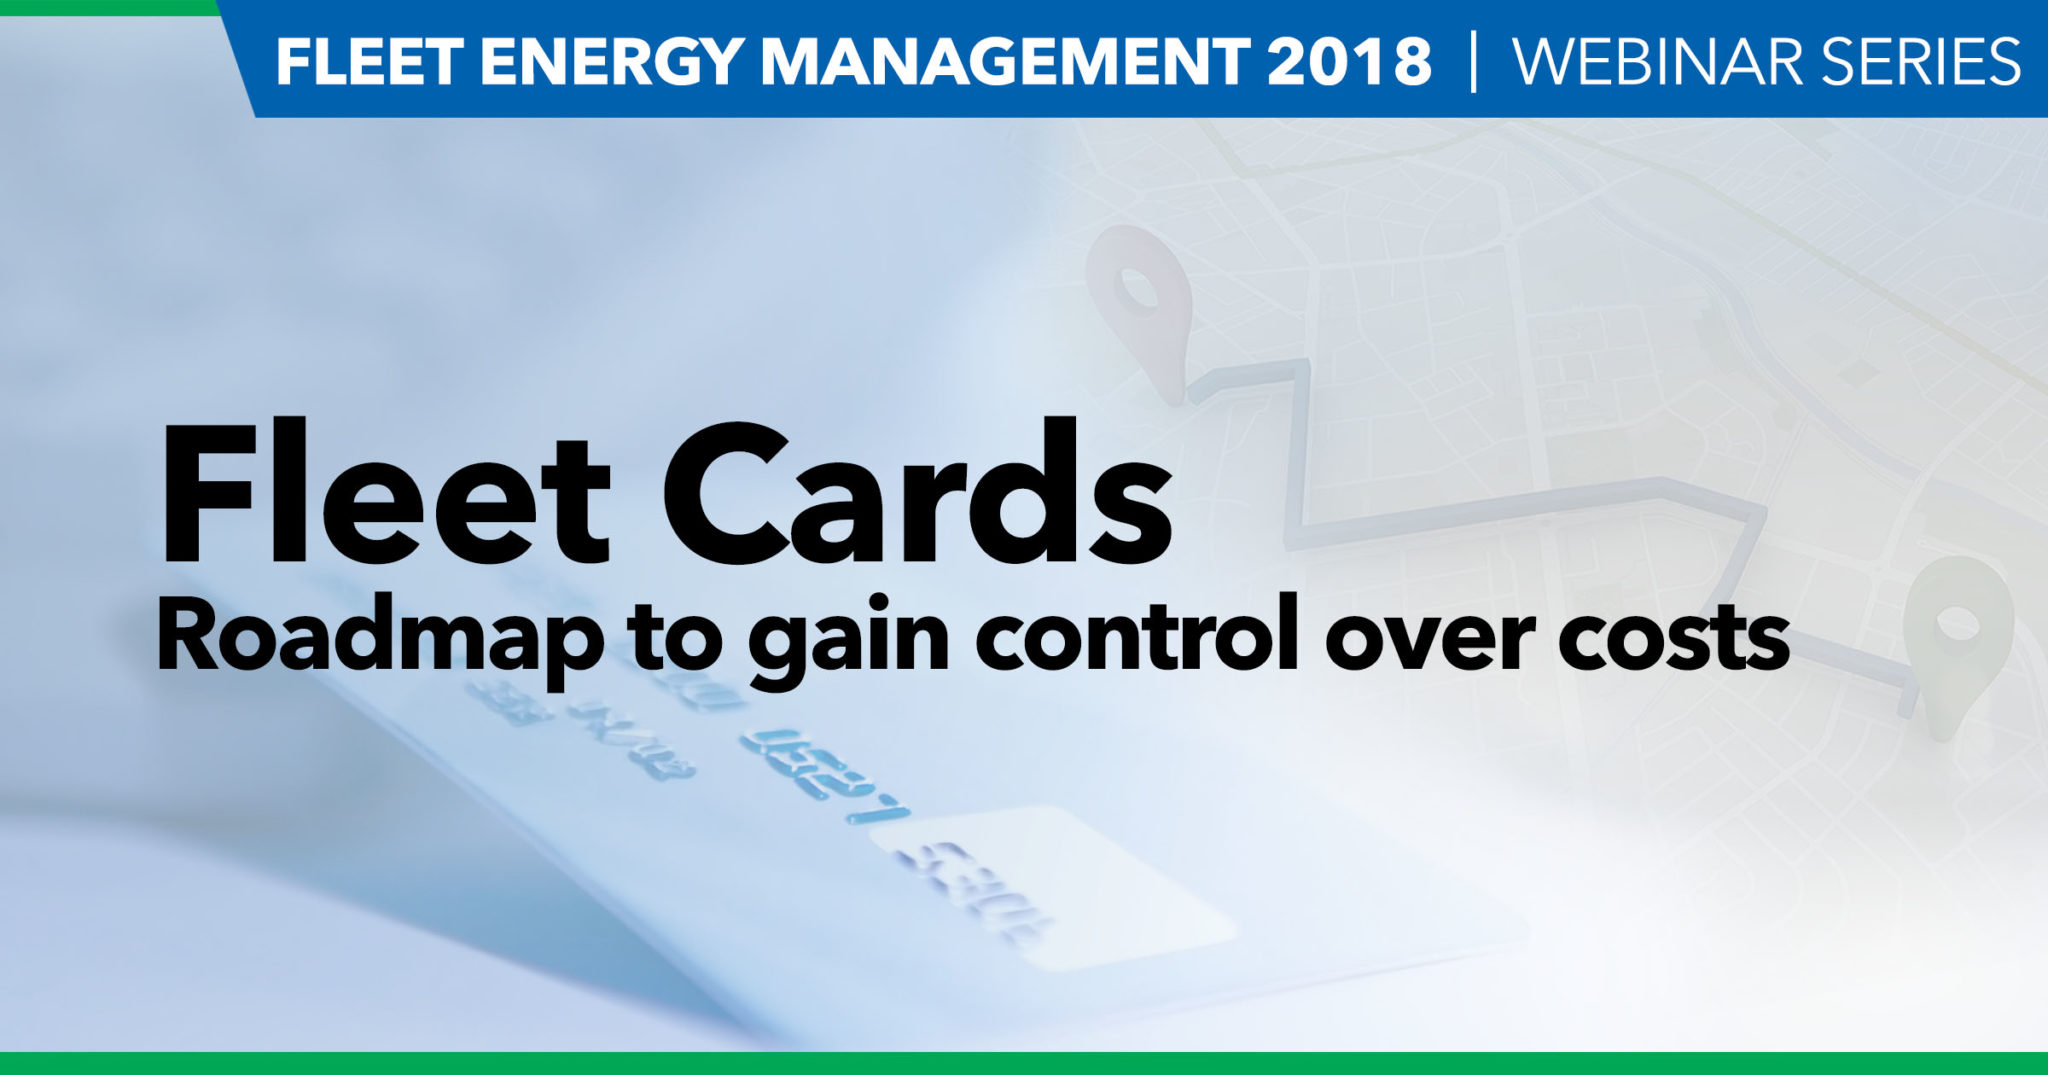 Fleet Cards | Roadmap to gain control over costs